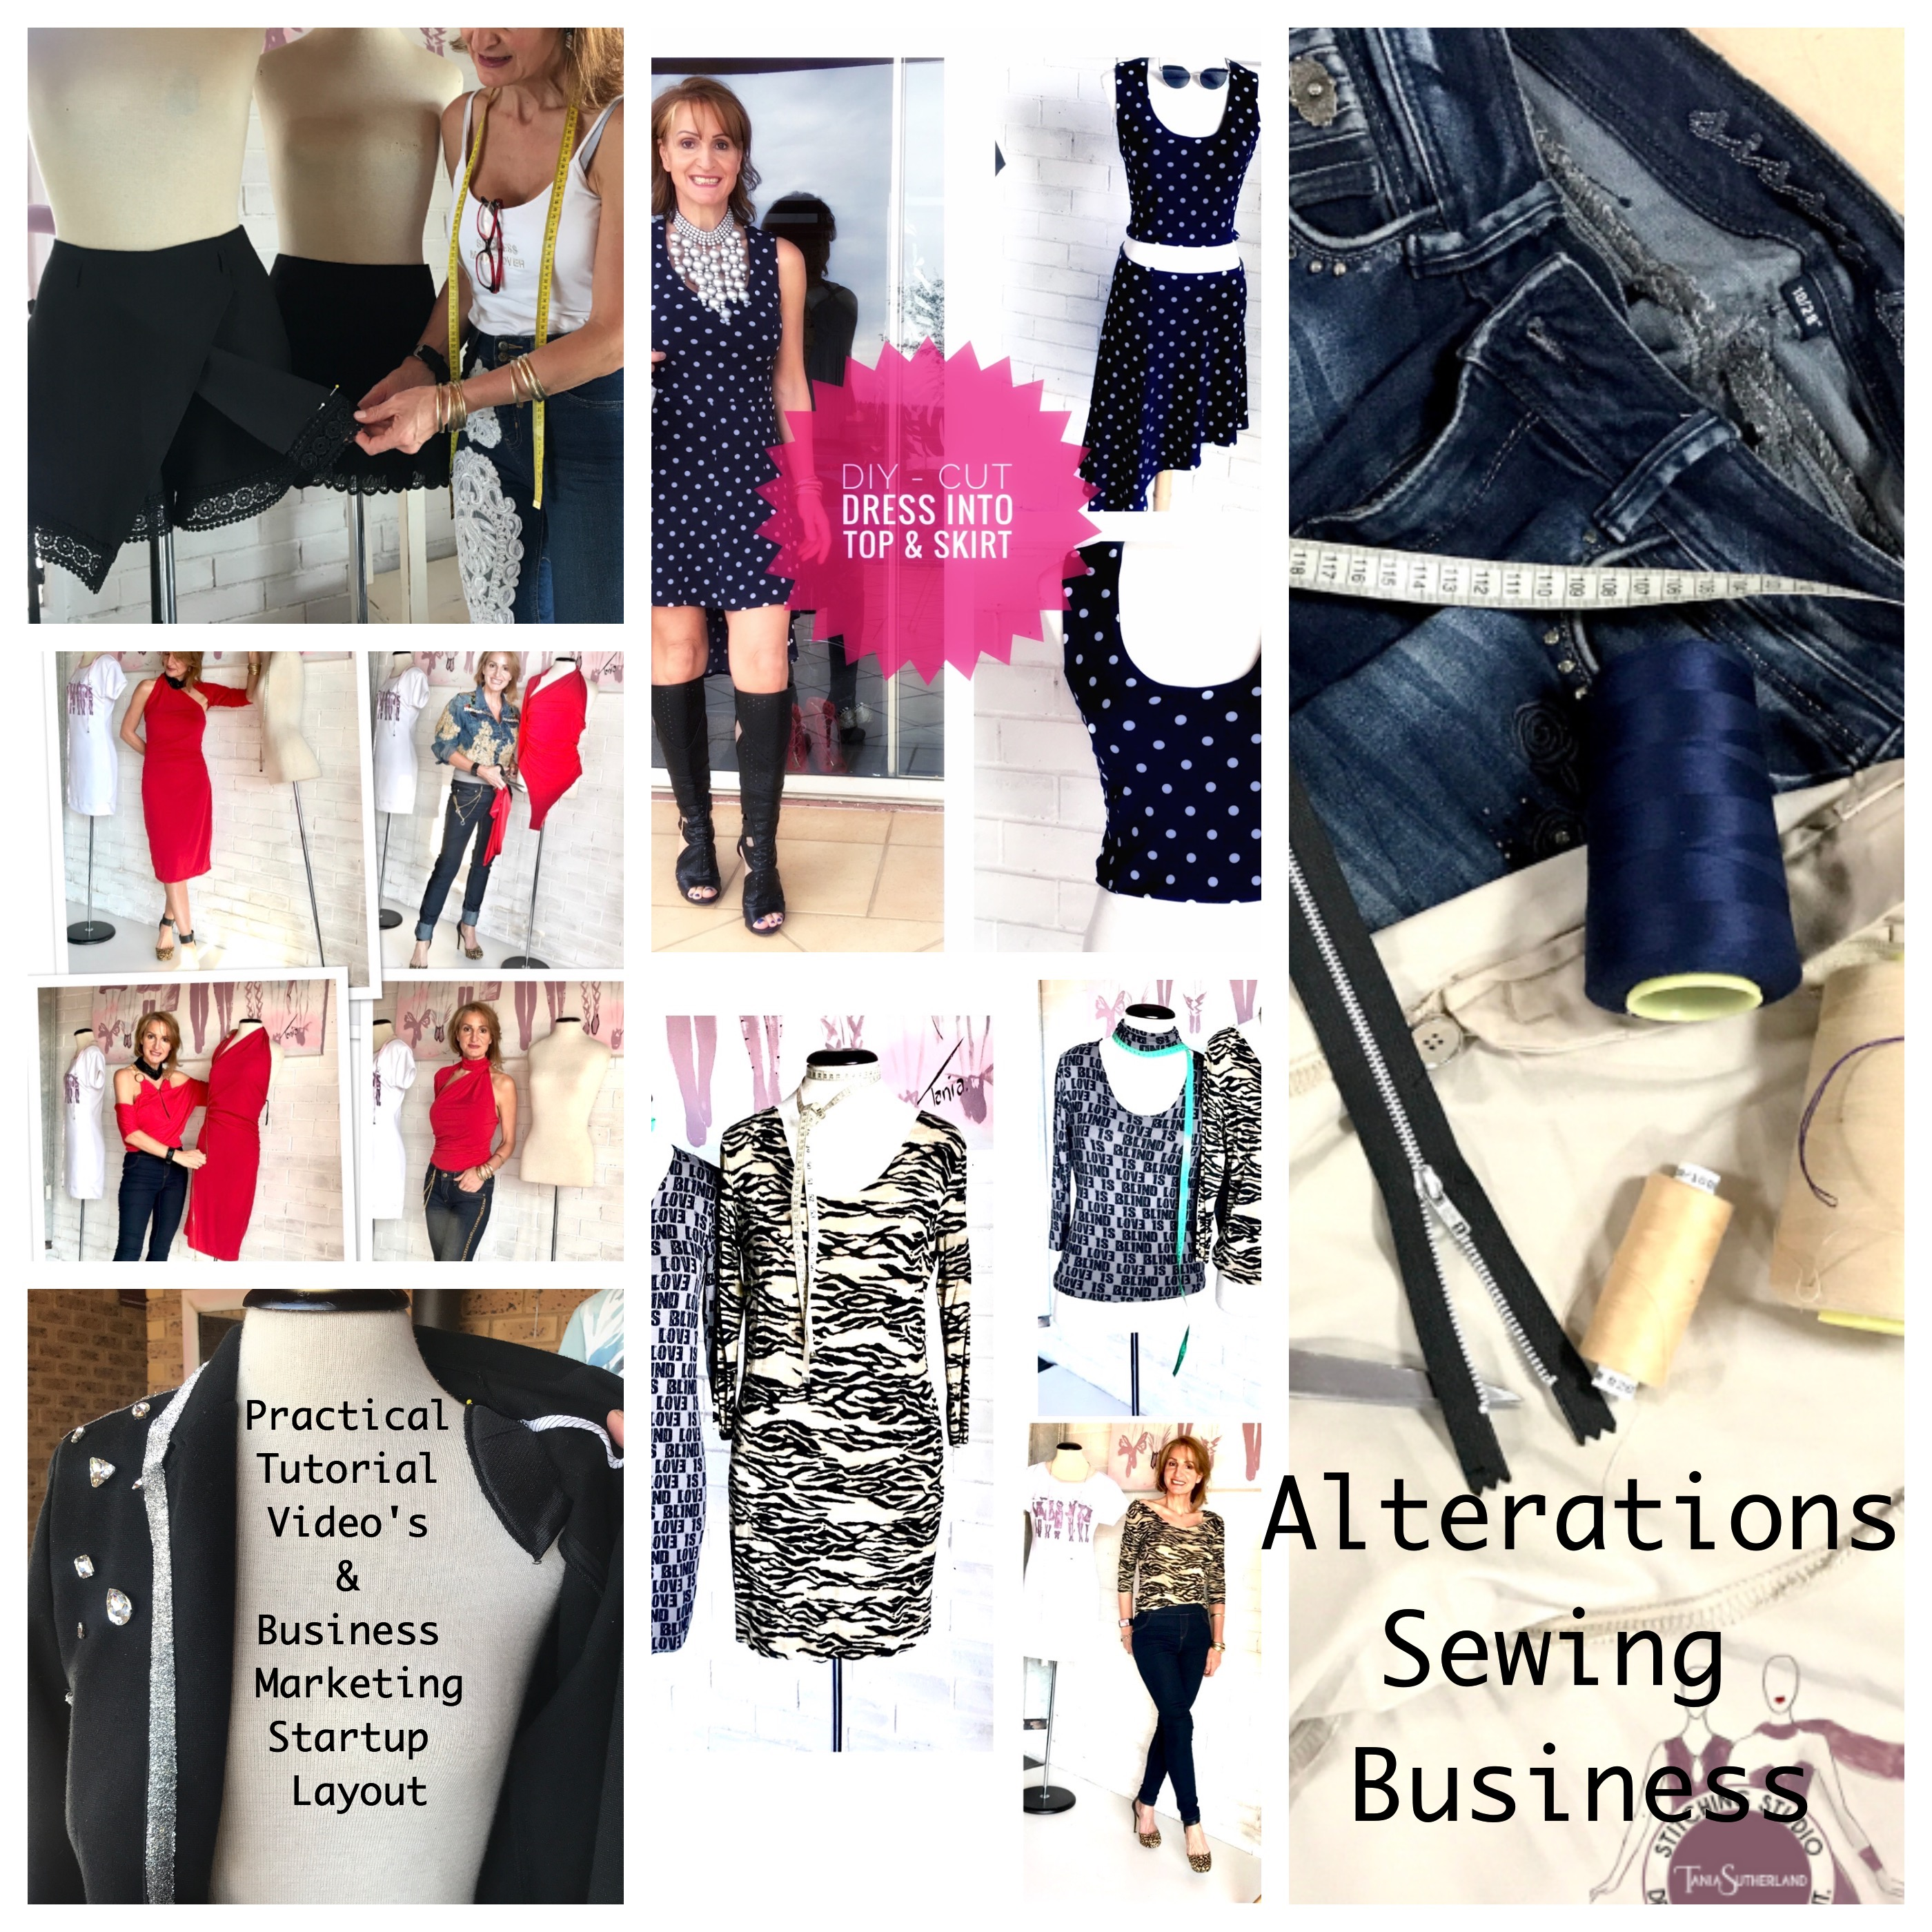 Alterations Sewing Business Startup